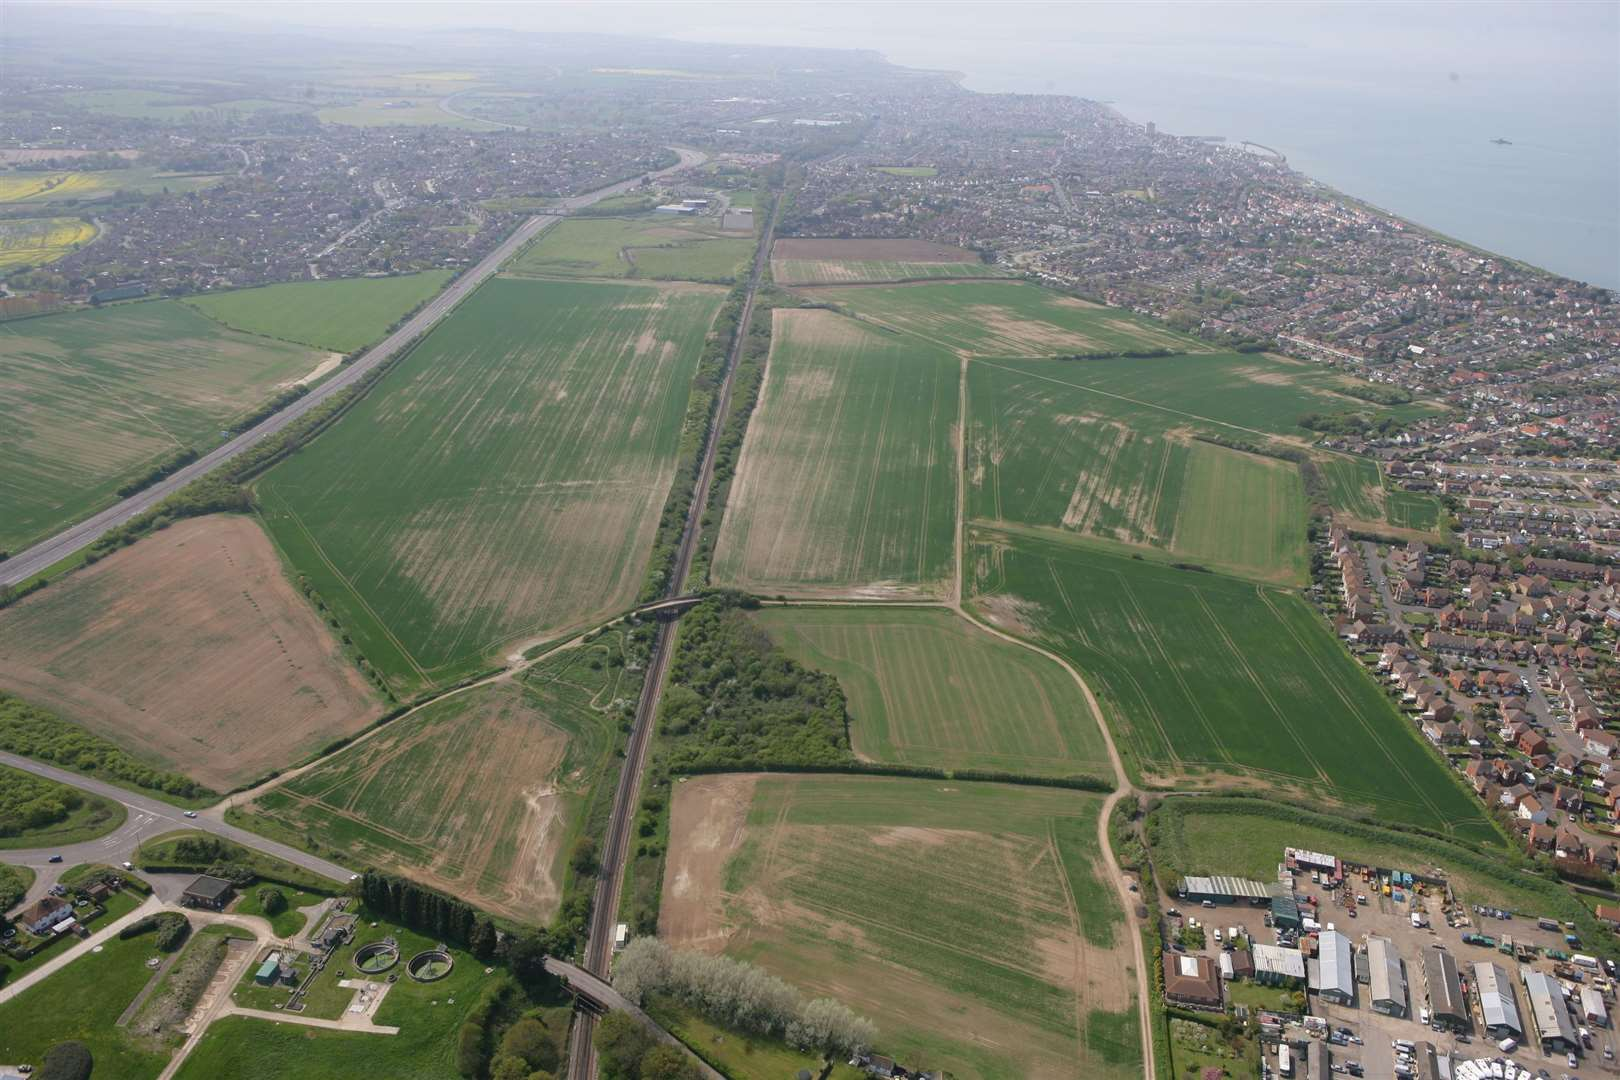 The land in Hillborough, Herne Bay, was earmarked for homes in the city council's Local Plan in 2017